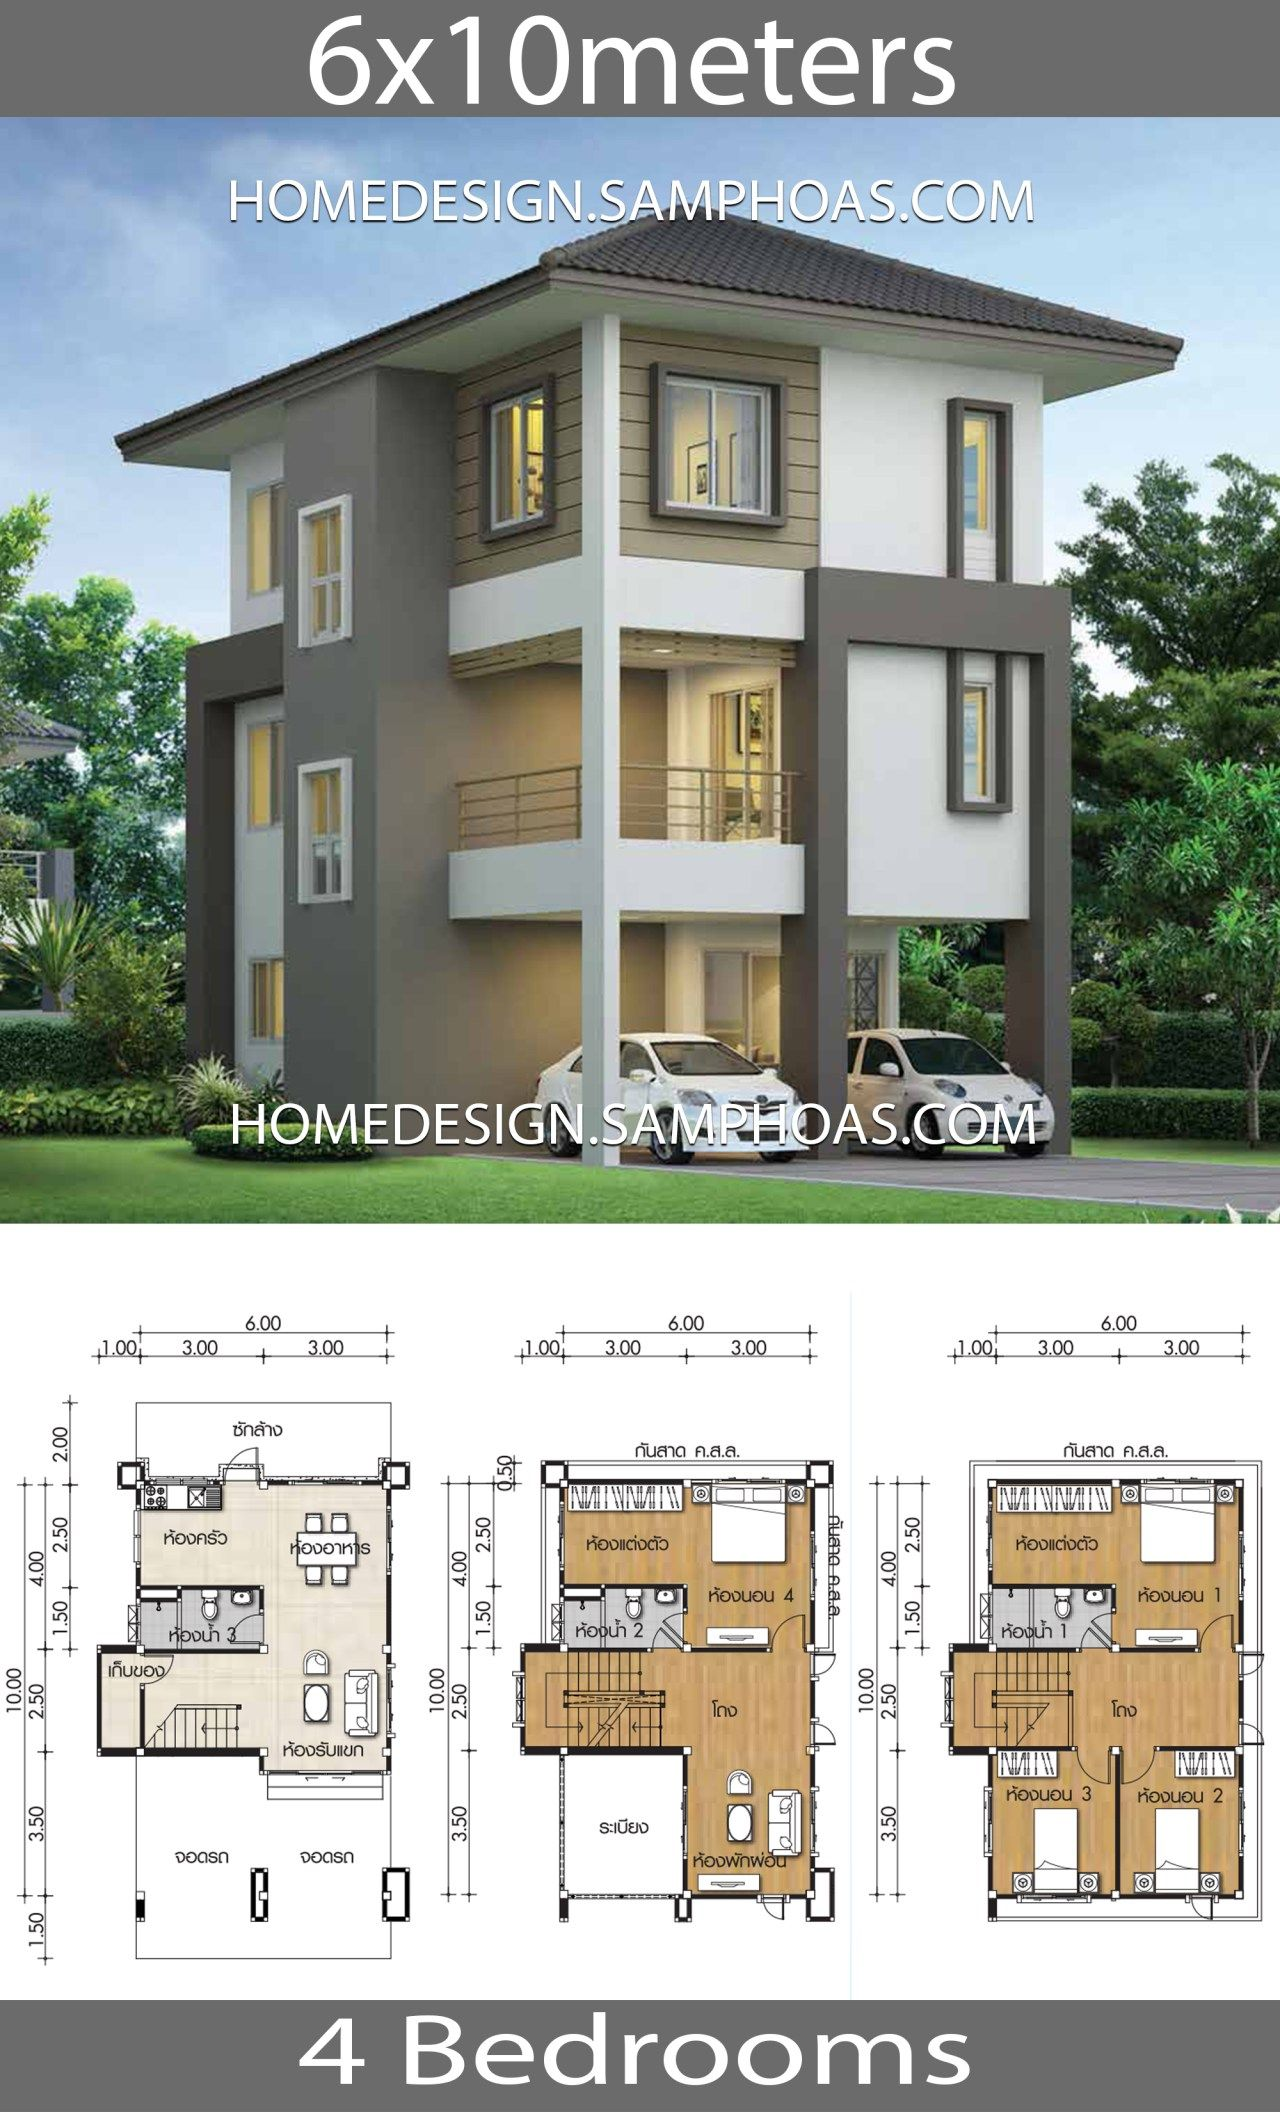 Home Design Plans 6x10m With 4 Bedrooms Home Ideas Affordable House Plans Model House Plan Home Building Design